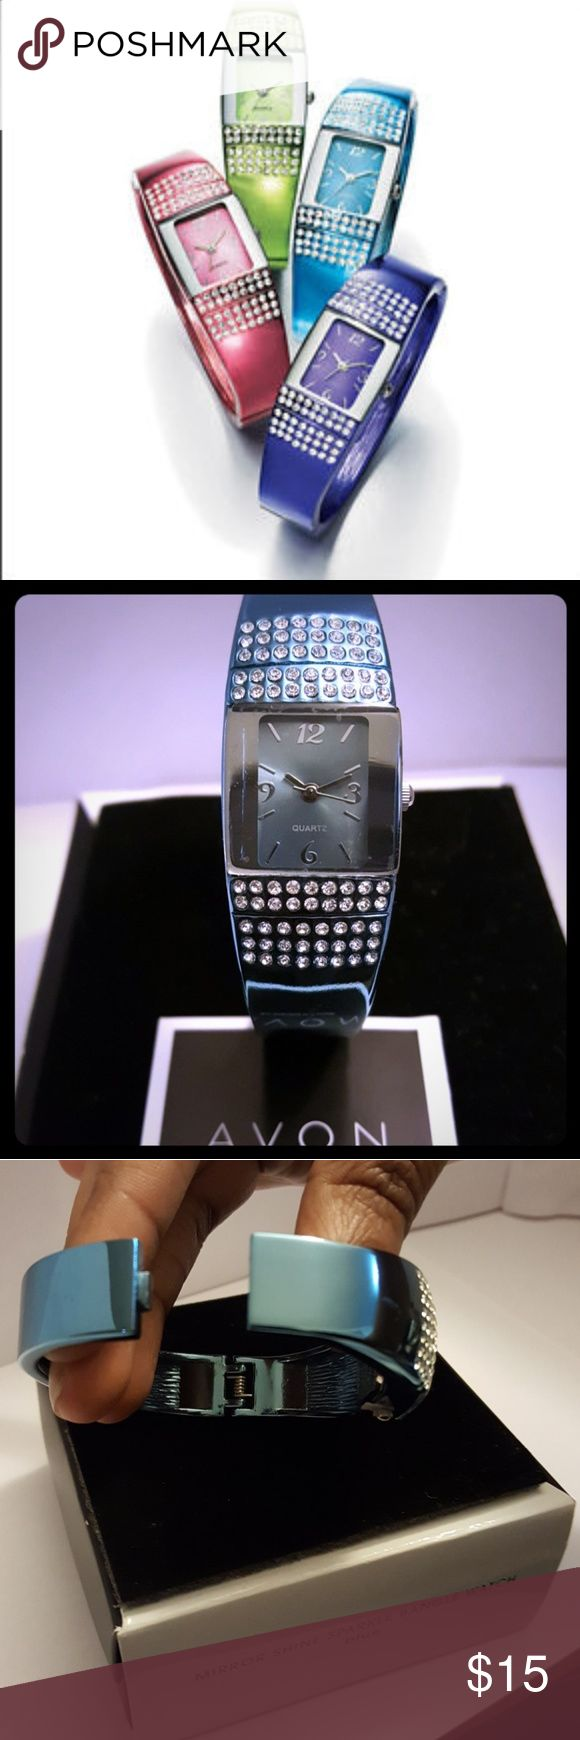 AVON Mirror Shine Sparkle Bangle Watch Wow them with style when you wear this dazzling Mirror Shine Sparkle Bangle Watch by AVON! It features a rectangular face adorn with 80 diamondesque rhinestones!!! The watch has a spring-loaded hinge opening for easy on and easy off! Questions?? Please feel free to ask! Happy Poshing!   **BRAND NEW**  Available Color Choices: -blue -pink Avon Accessories Watches